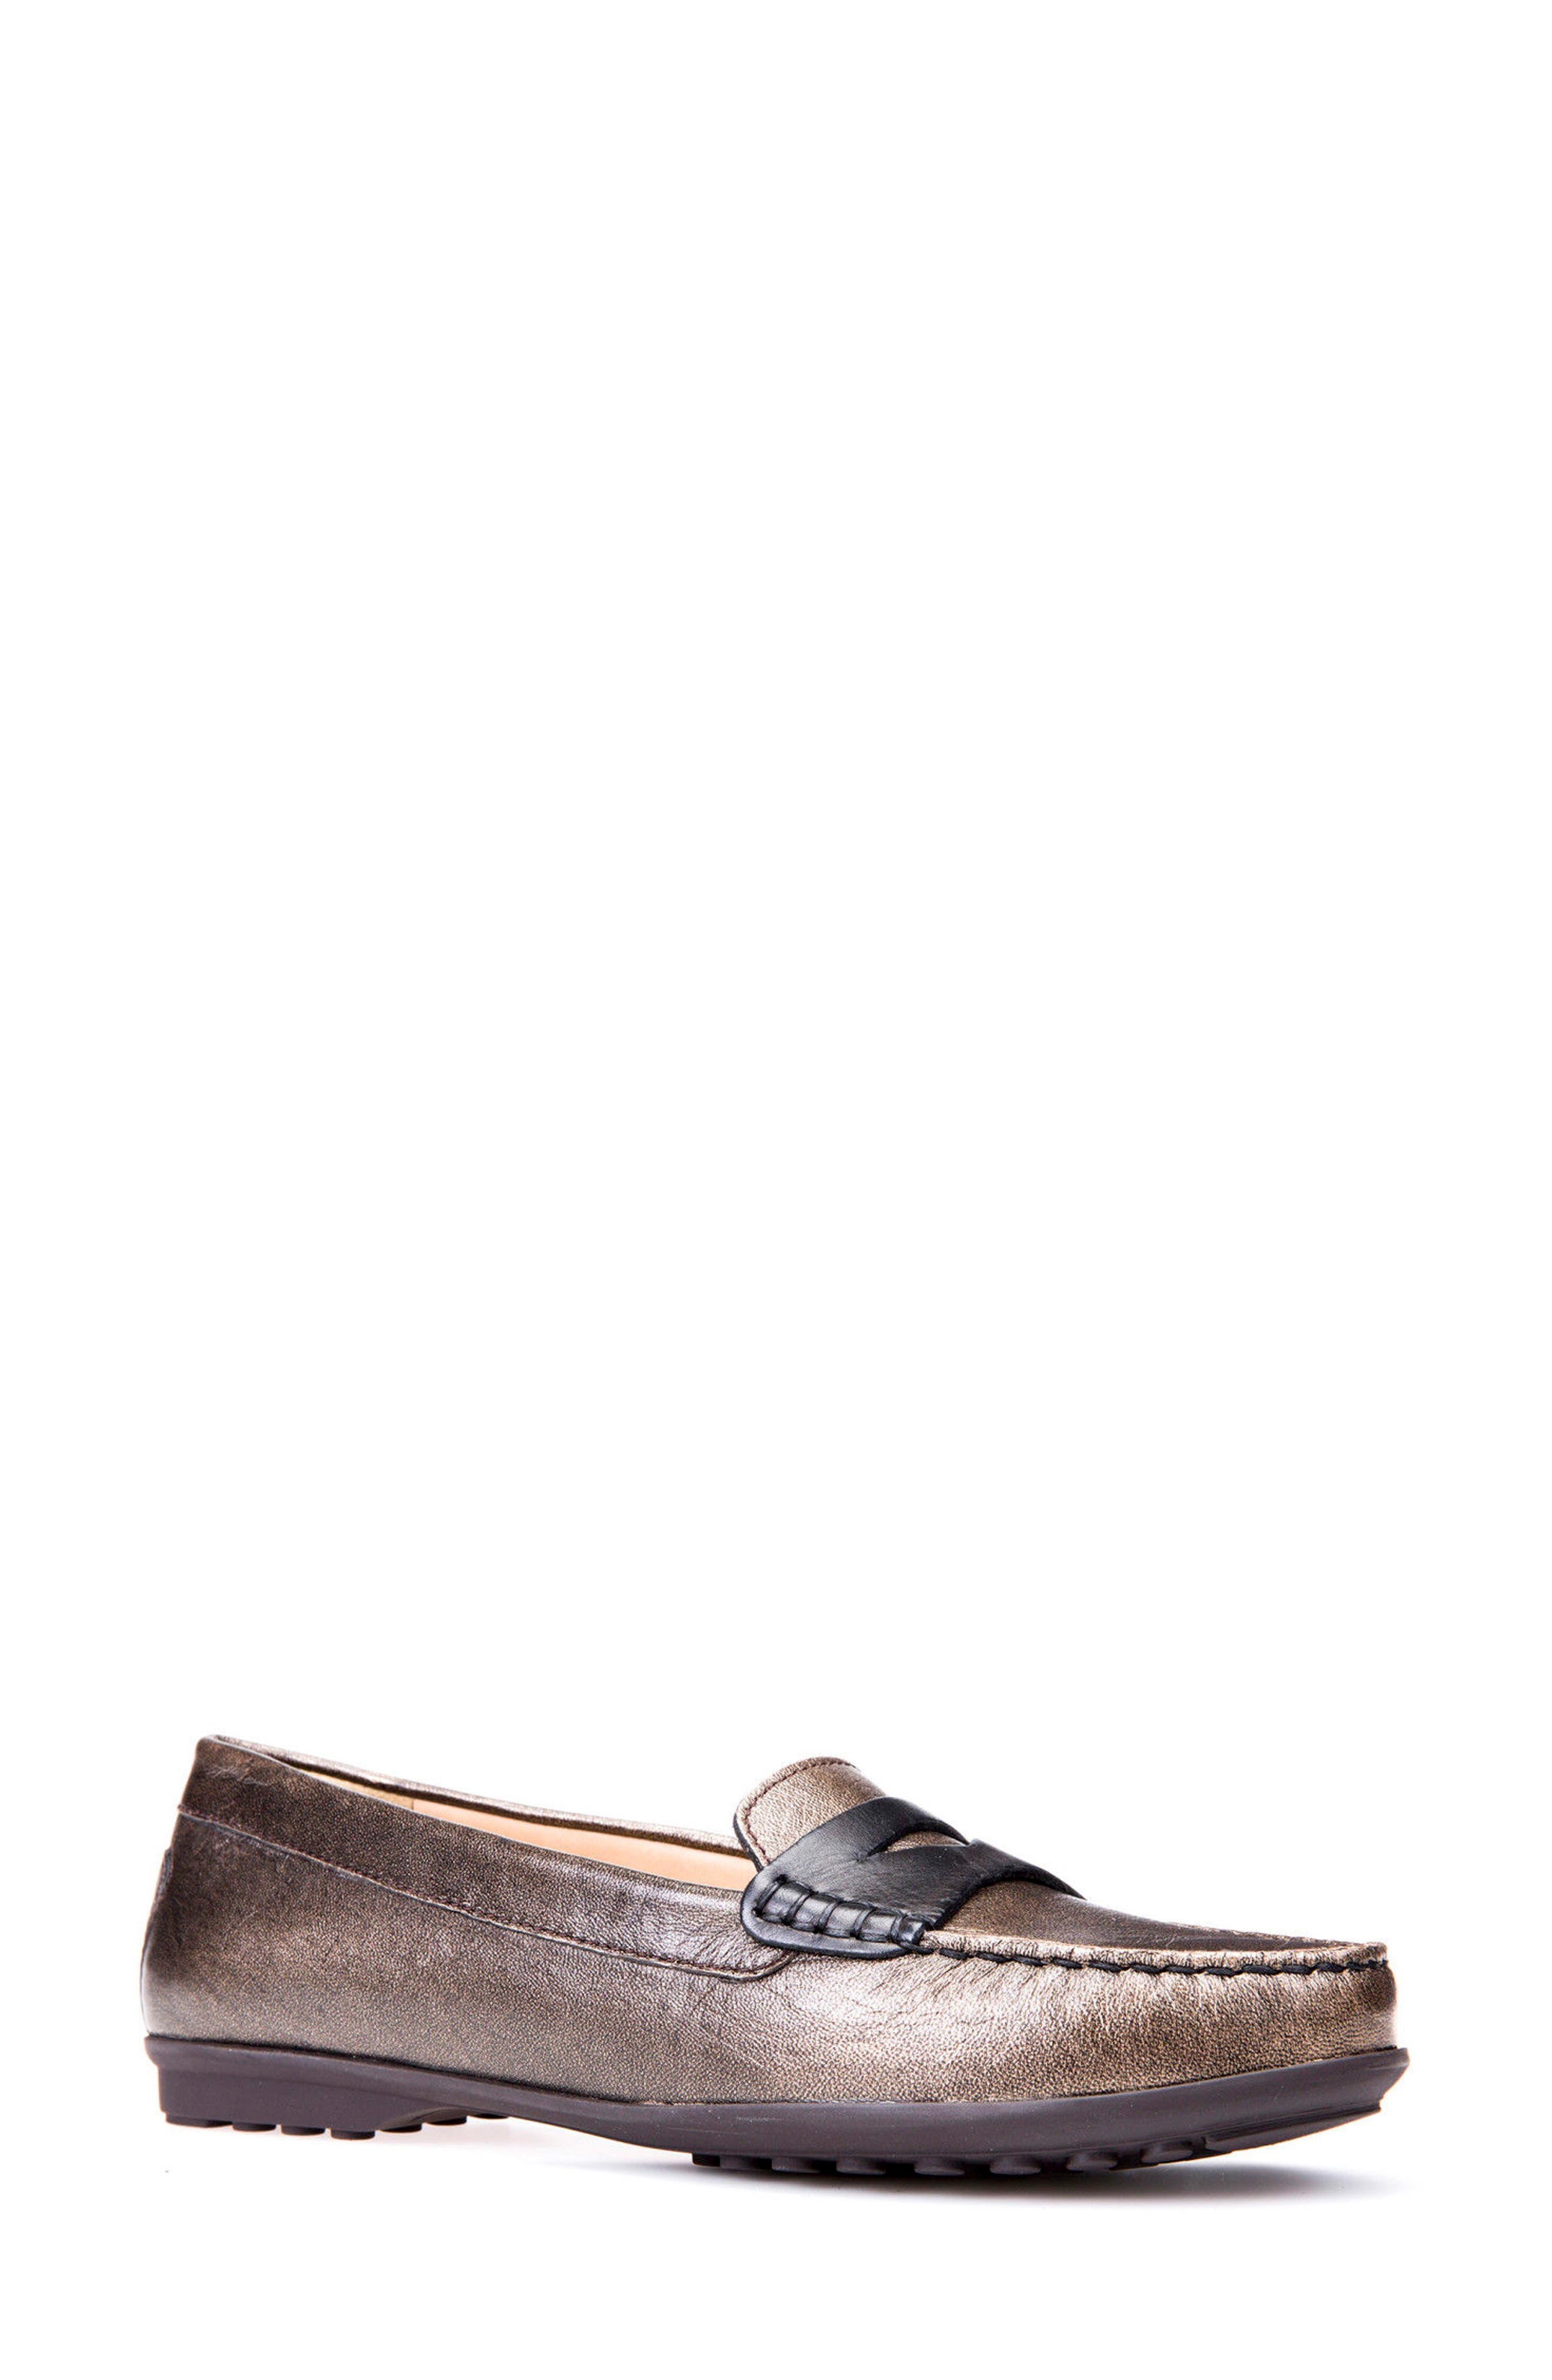 Alternate Image 1 Selected - Geox Elidia 5 Penny Loafer (Women)